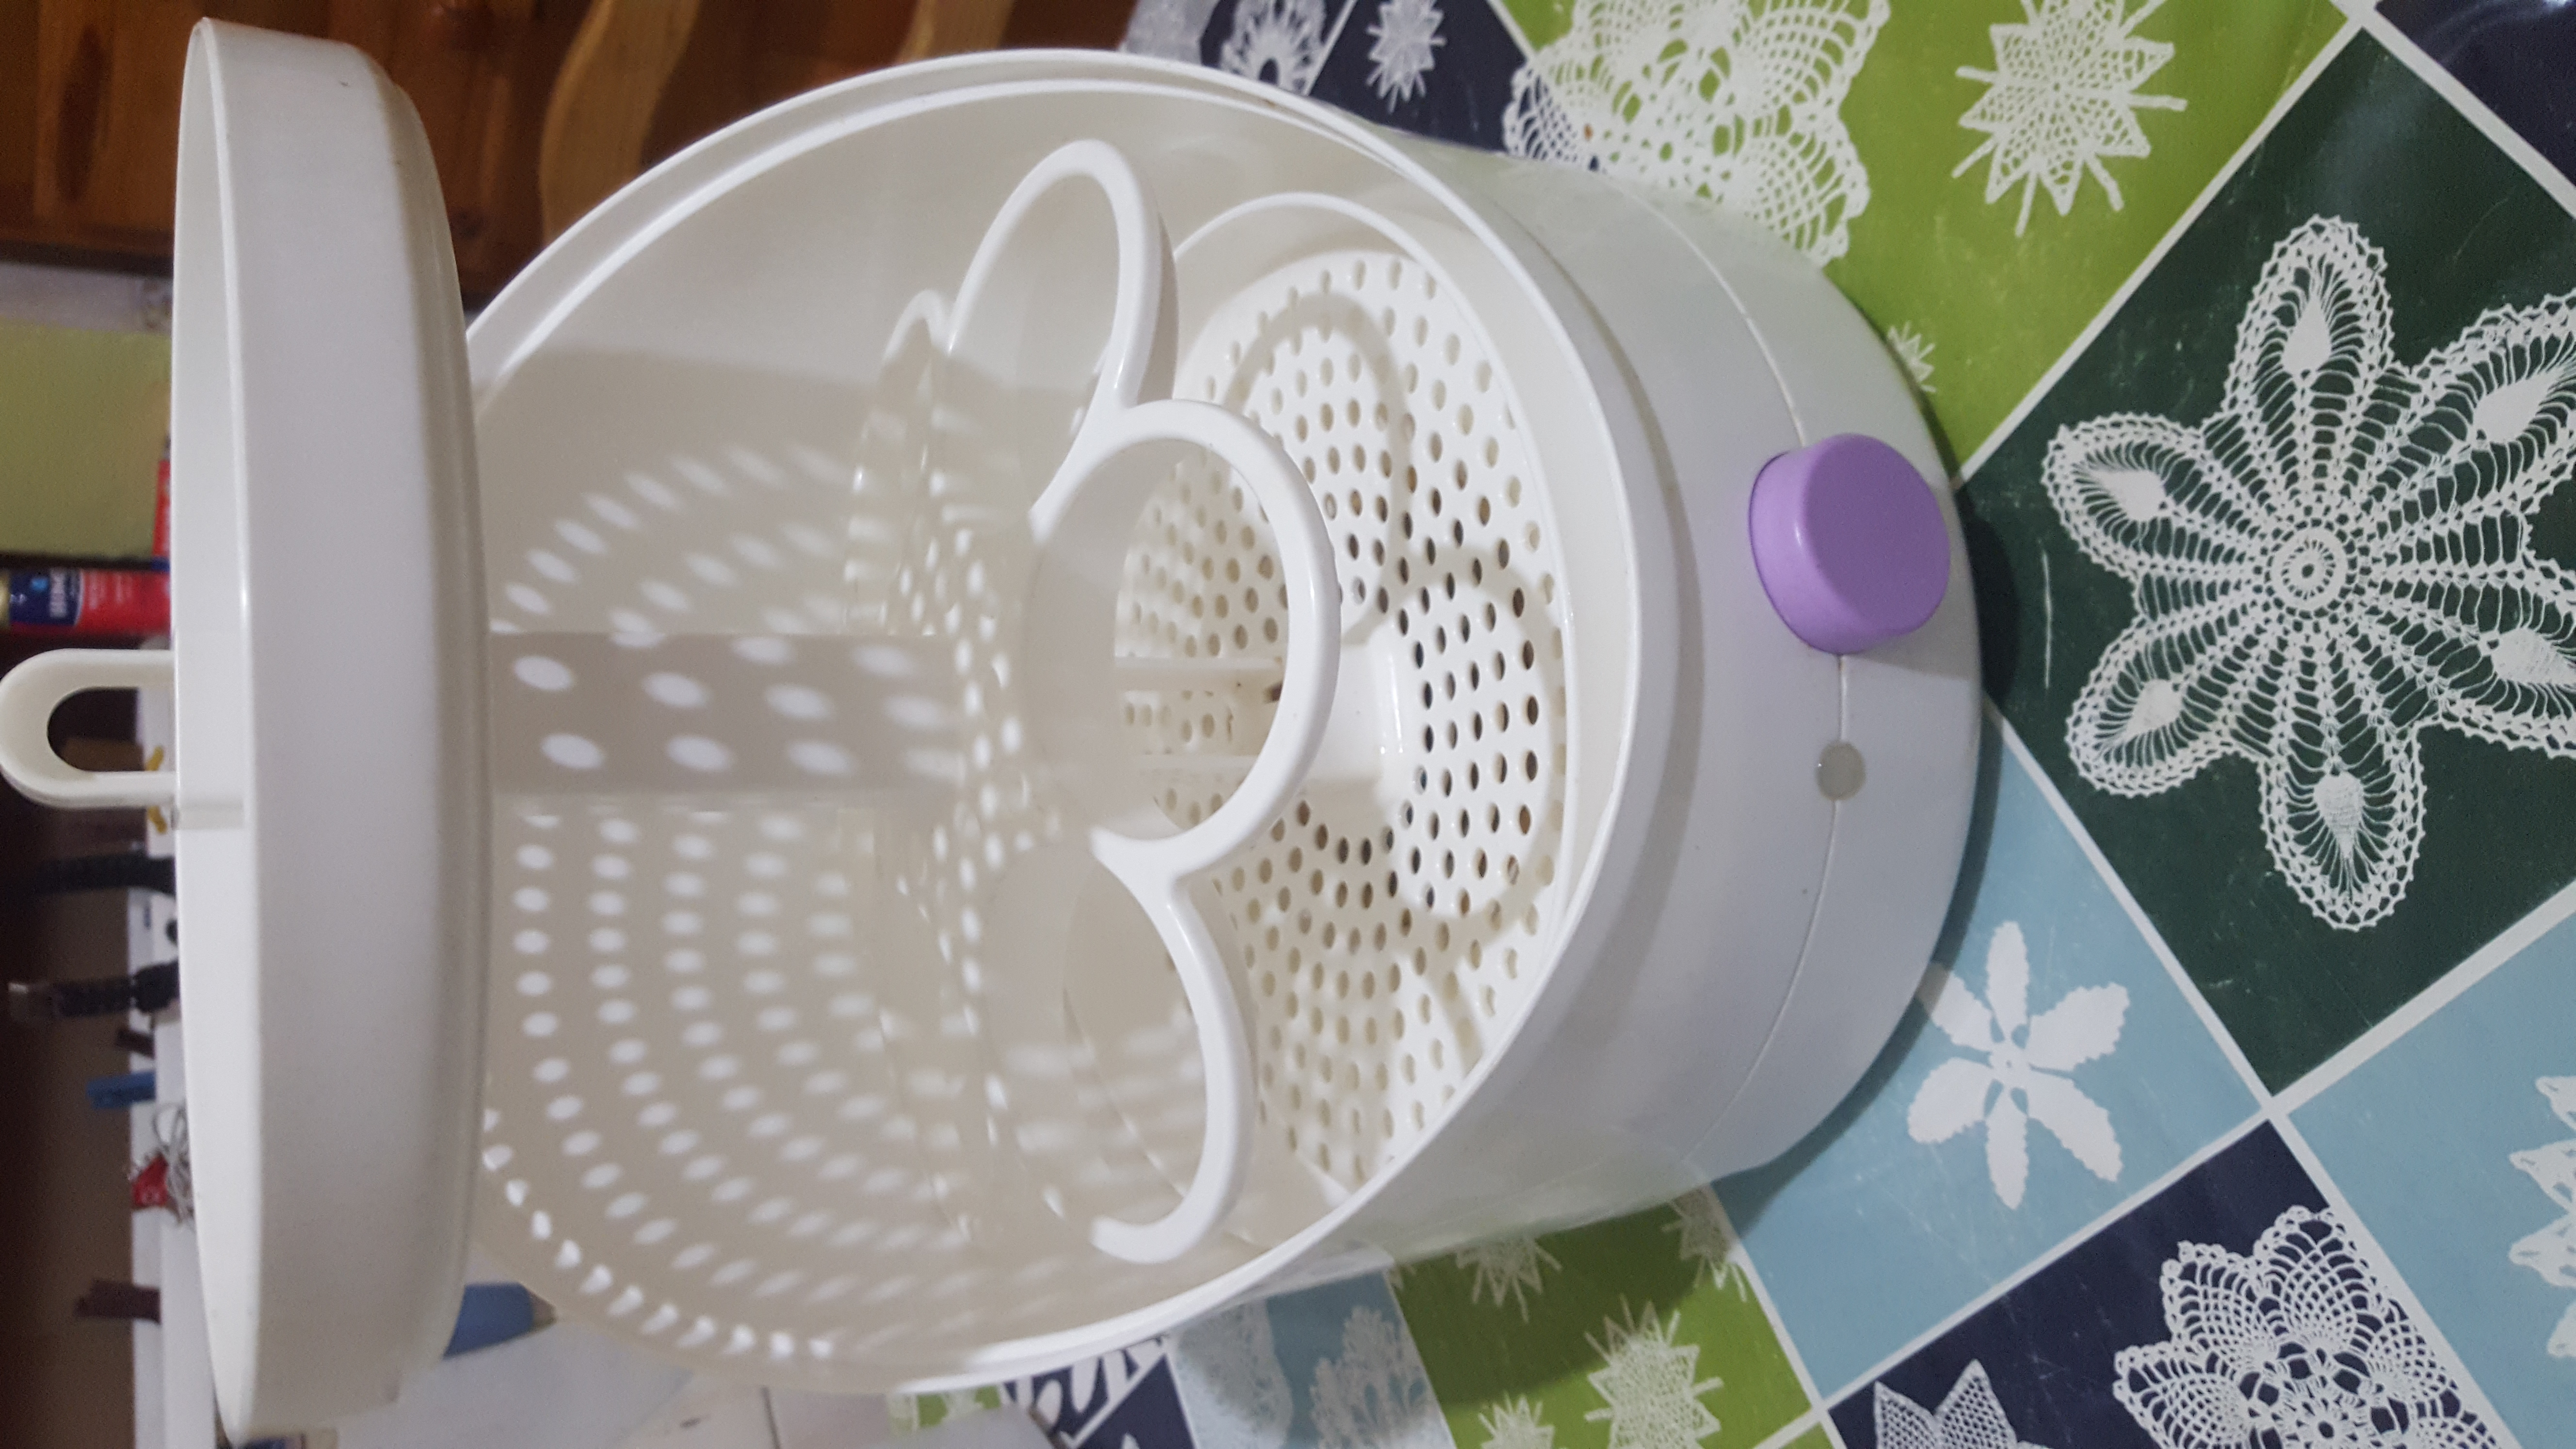 STERILISATEUR CHICCO ouedkniss